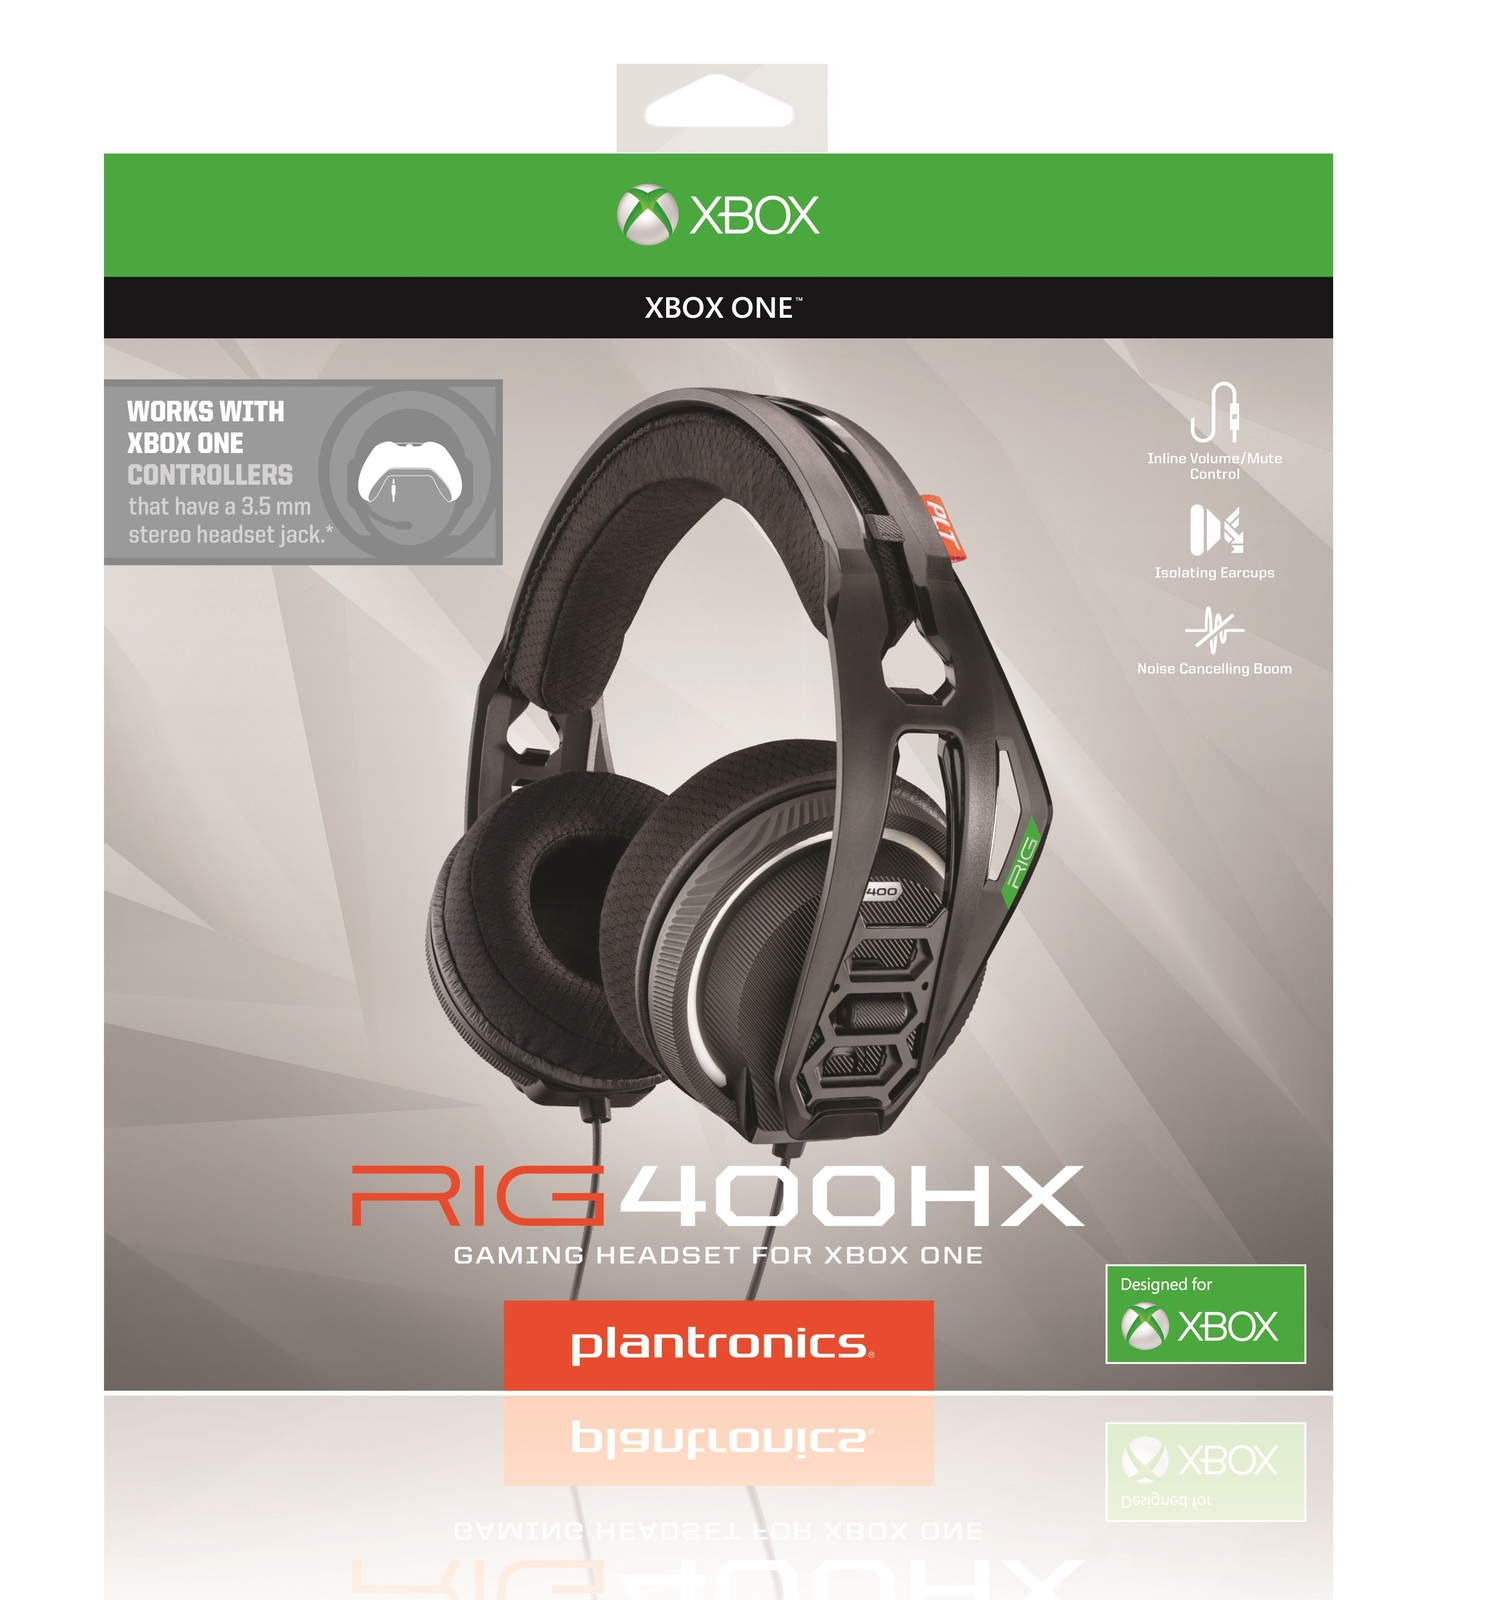 Plantronics RIG400HX Xbox One Gaming Headset for Xbox One image